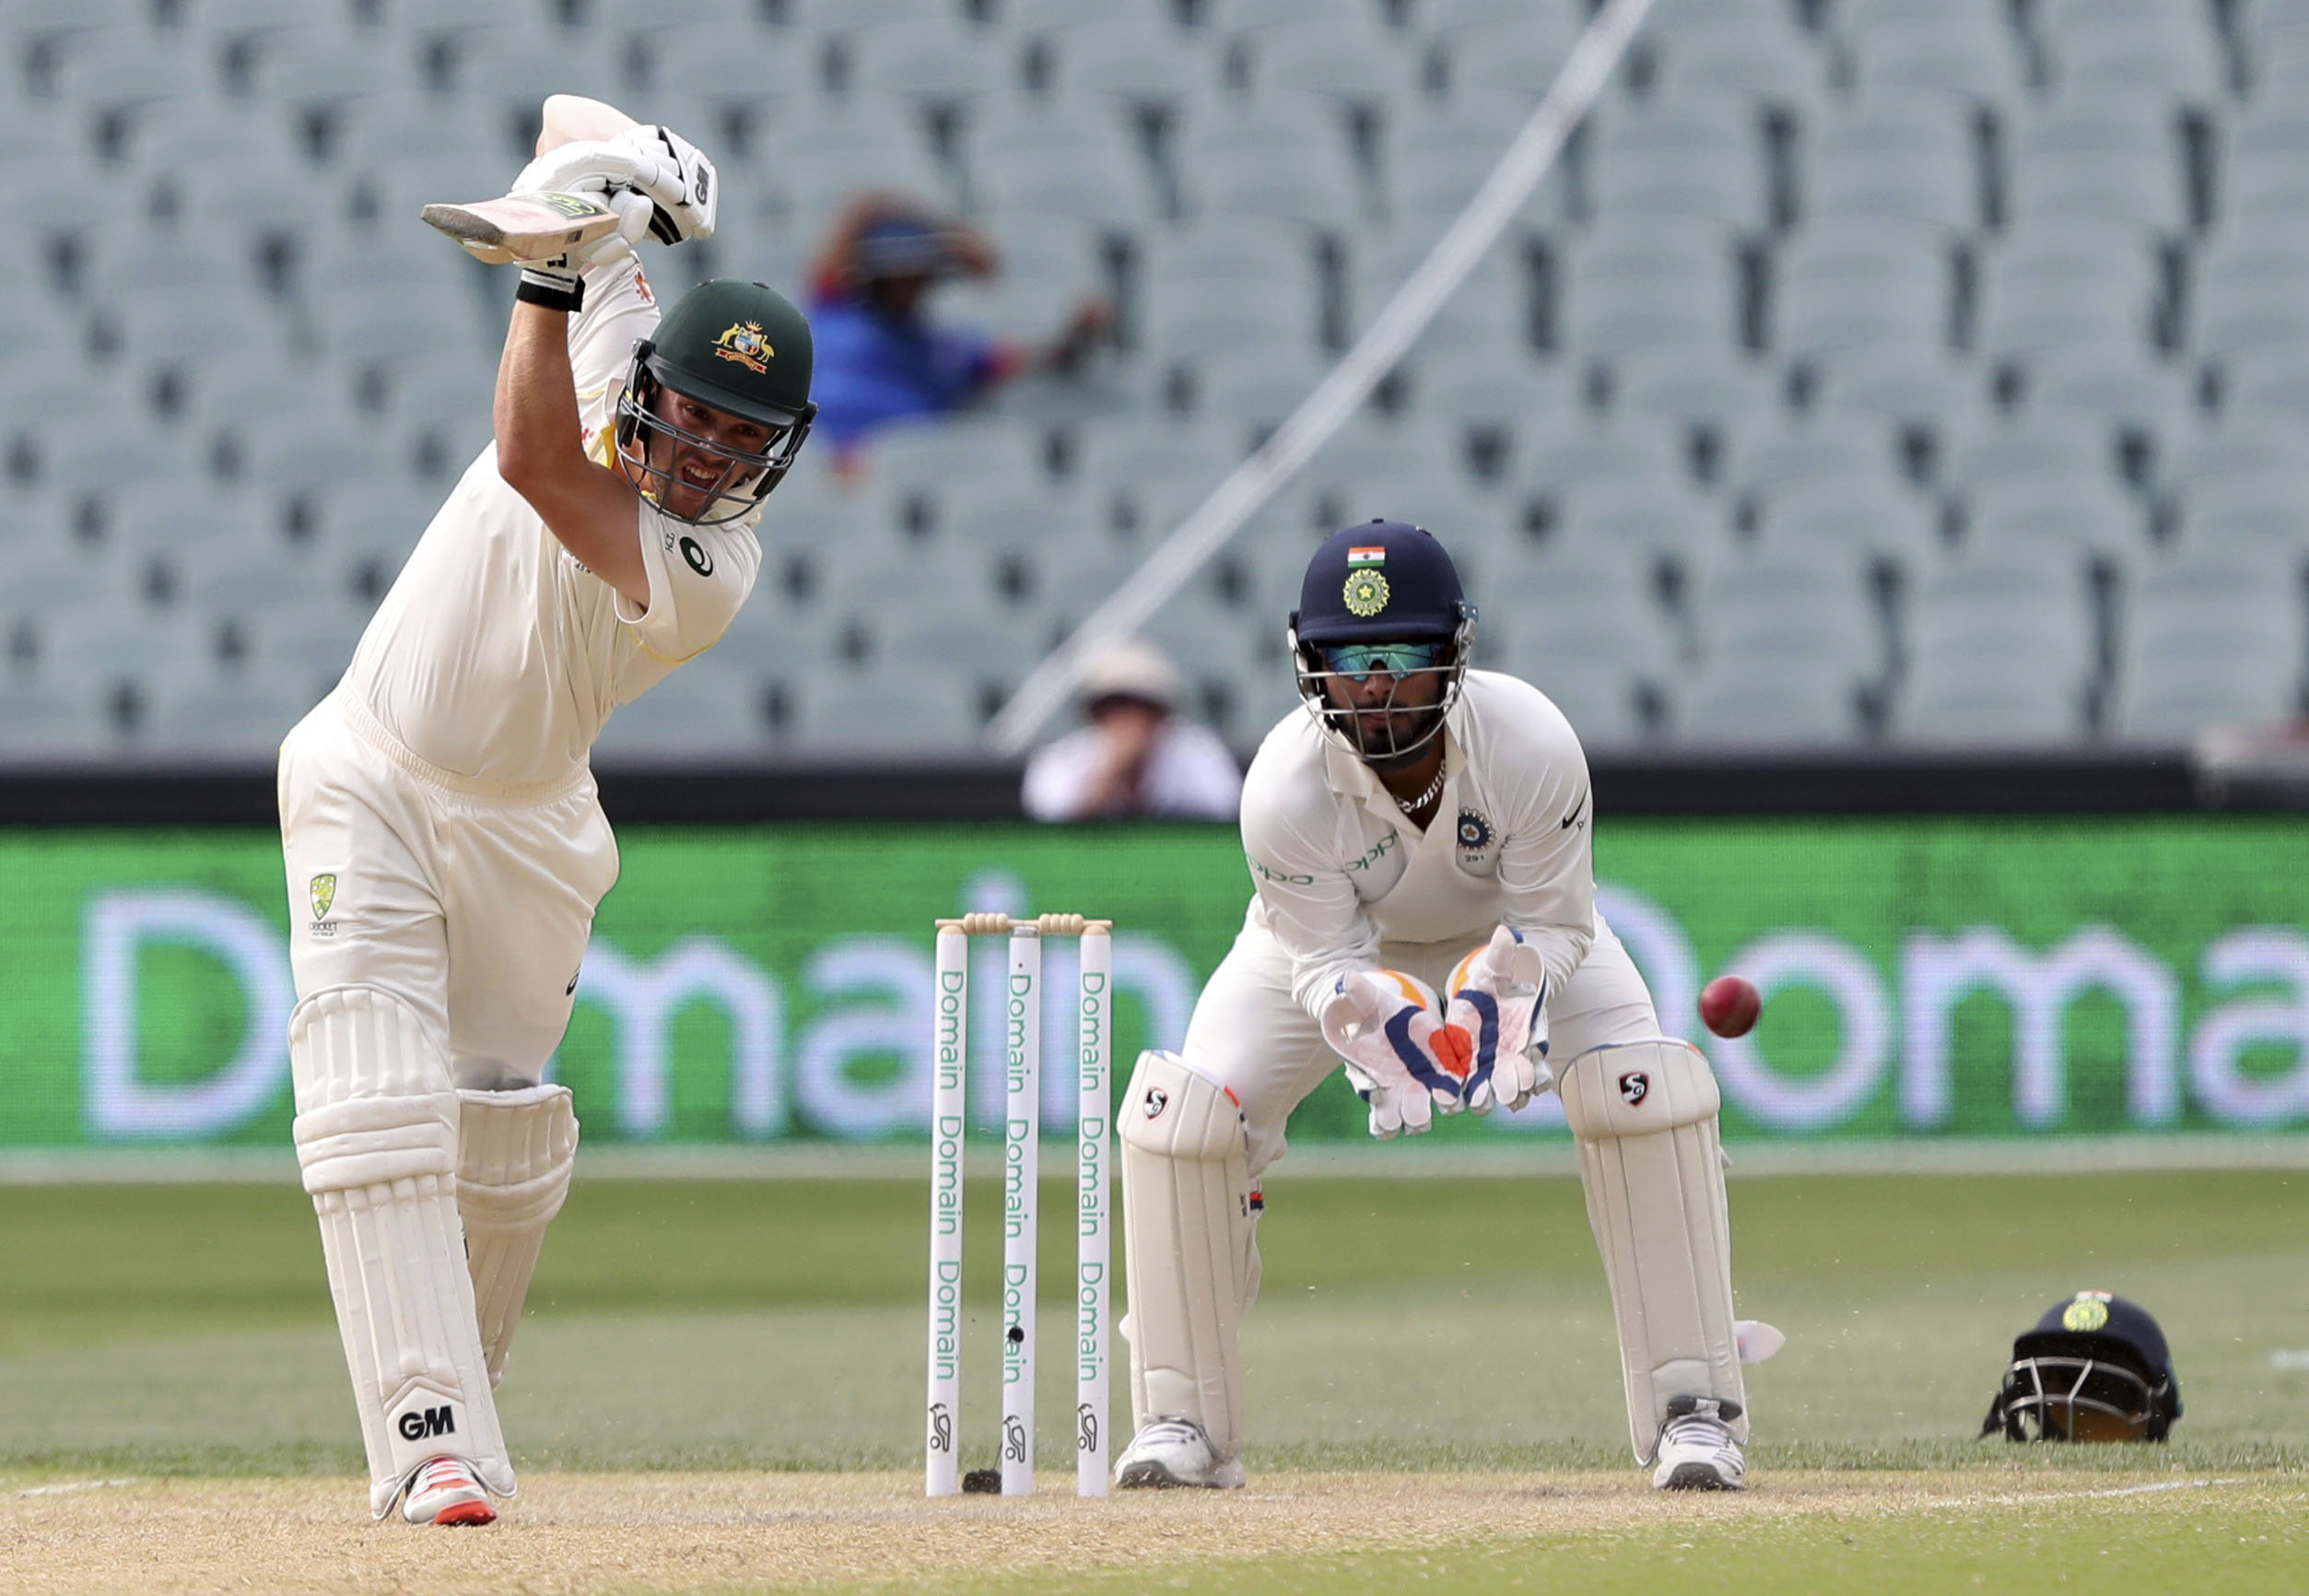 Australia's Travis Head bats on day four during the first cricket test between Australia and India in Adelaide, Australia on Sunday.